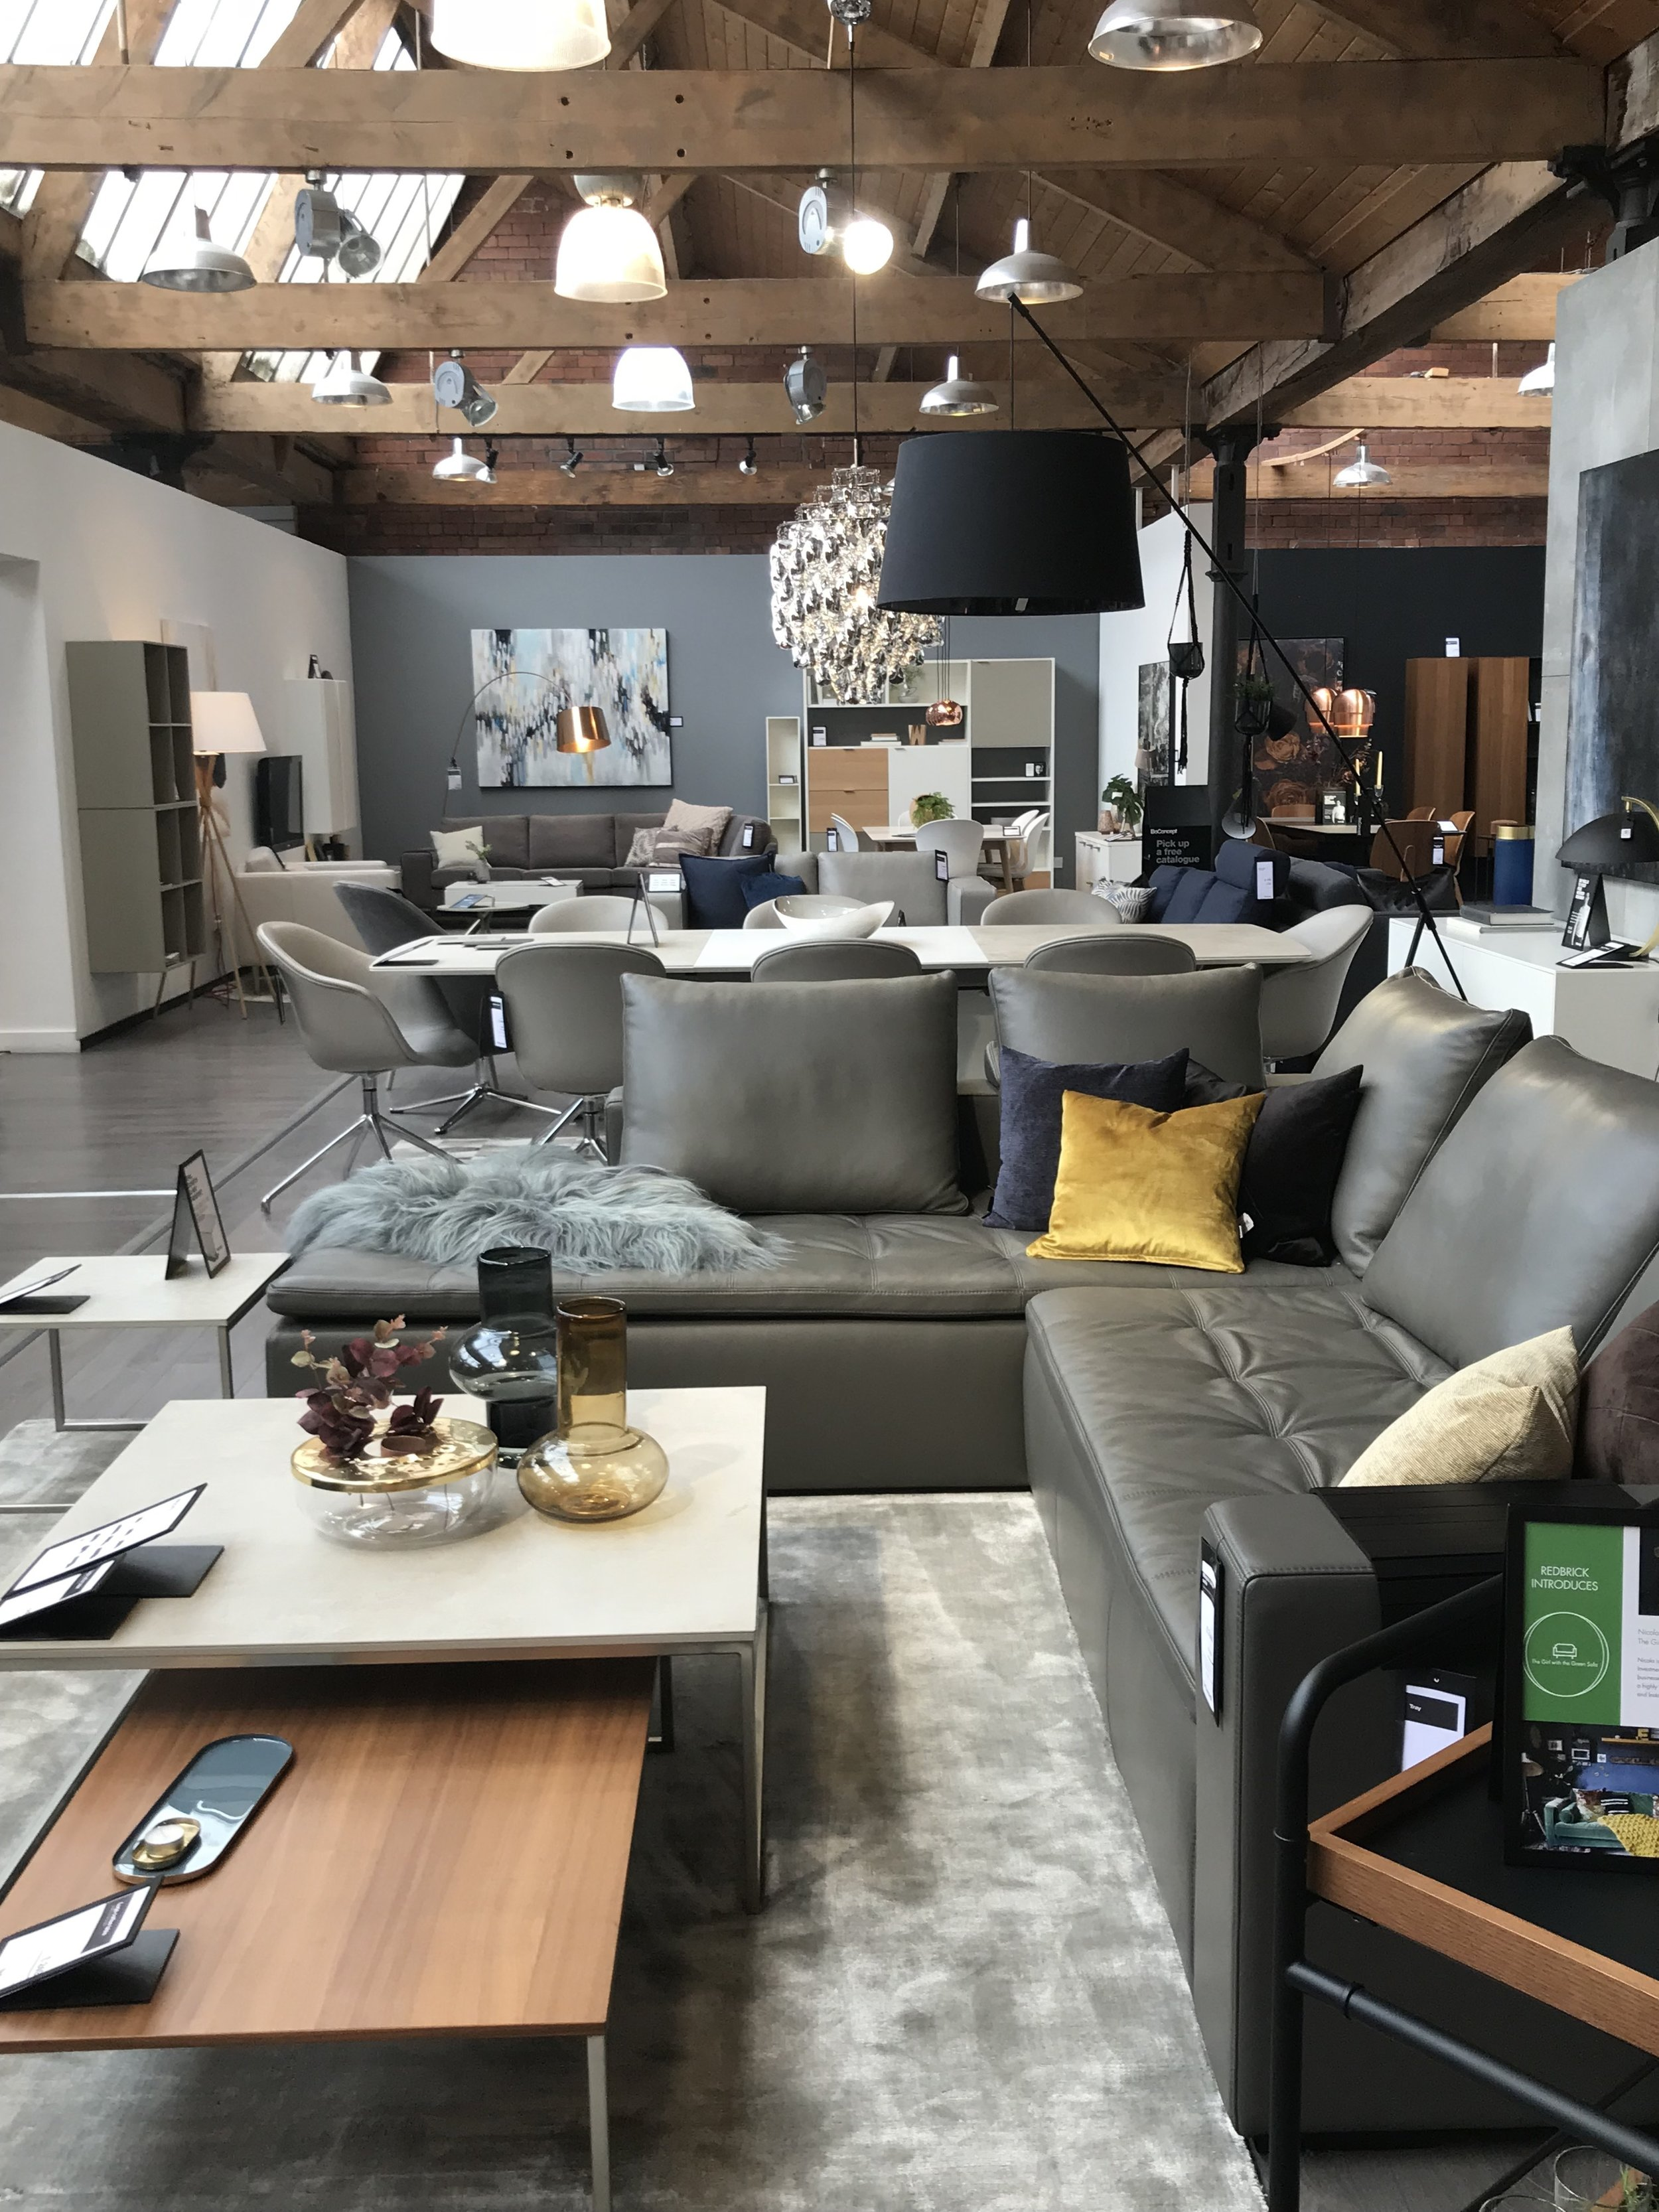 BoConcept are Denmark's iconic furniture brand - find them on the Ground Floor